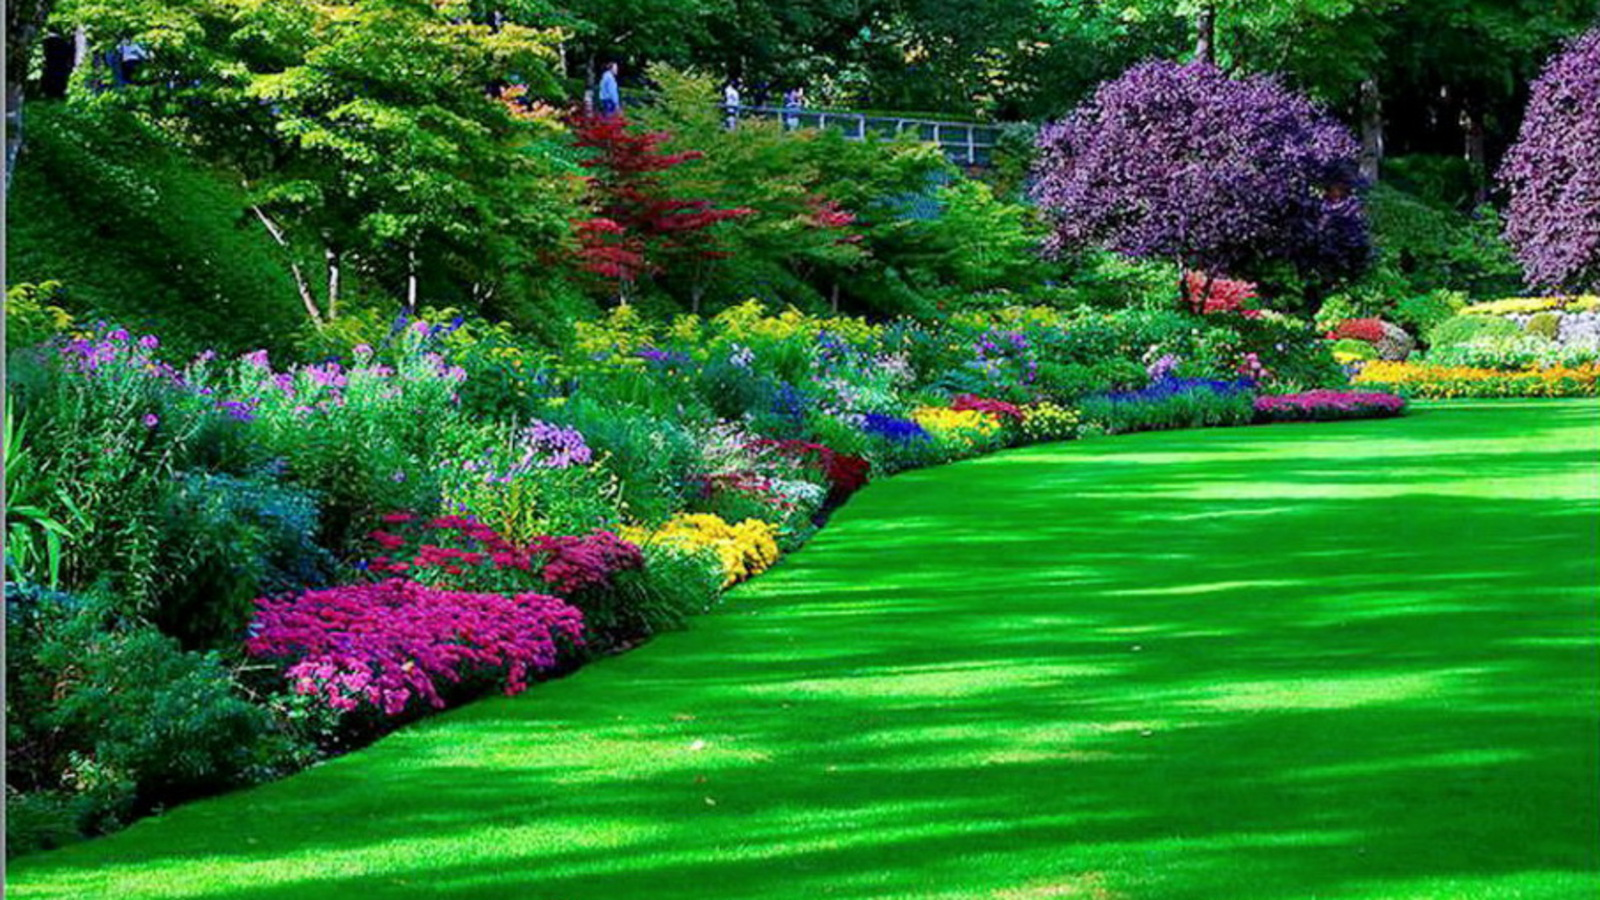 [49+] English Garden Desktop Wallpaper On WallpaperSafari